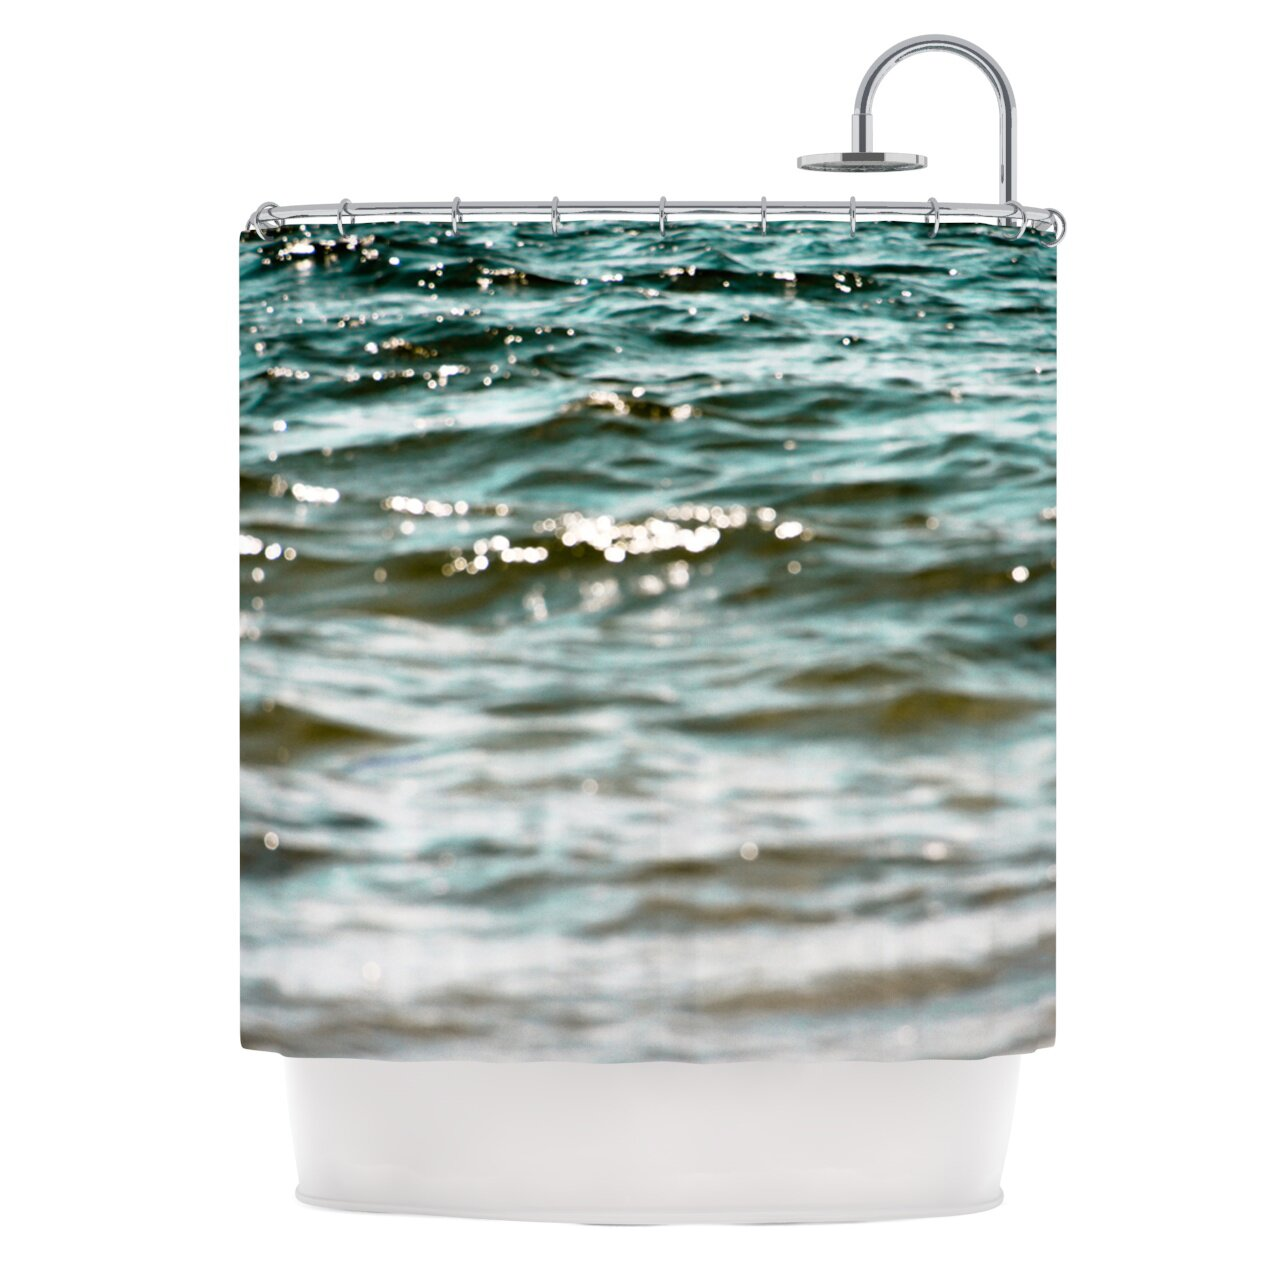 KESS InHouse Turquoise Blue Shower Curtain